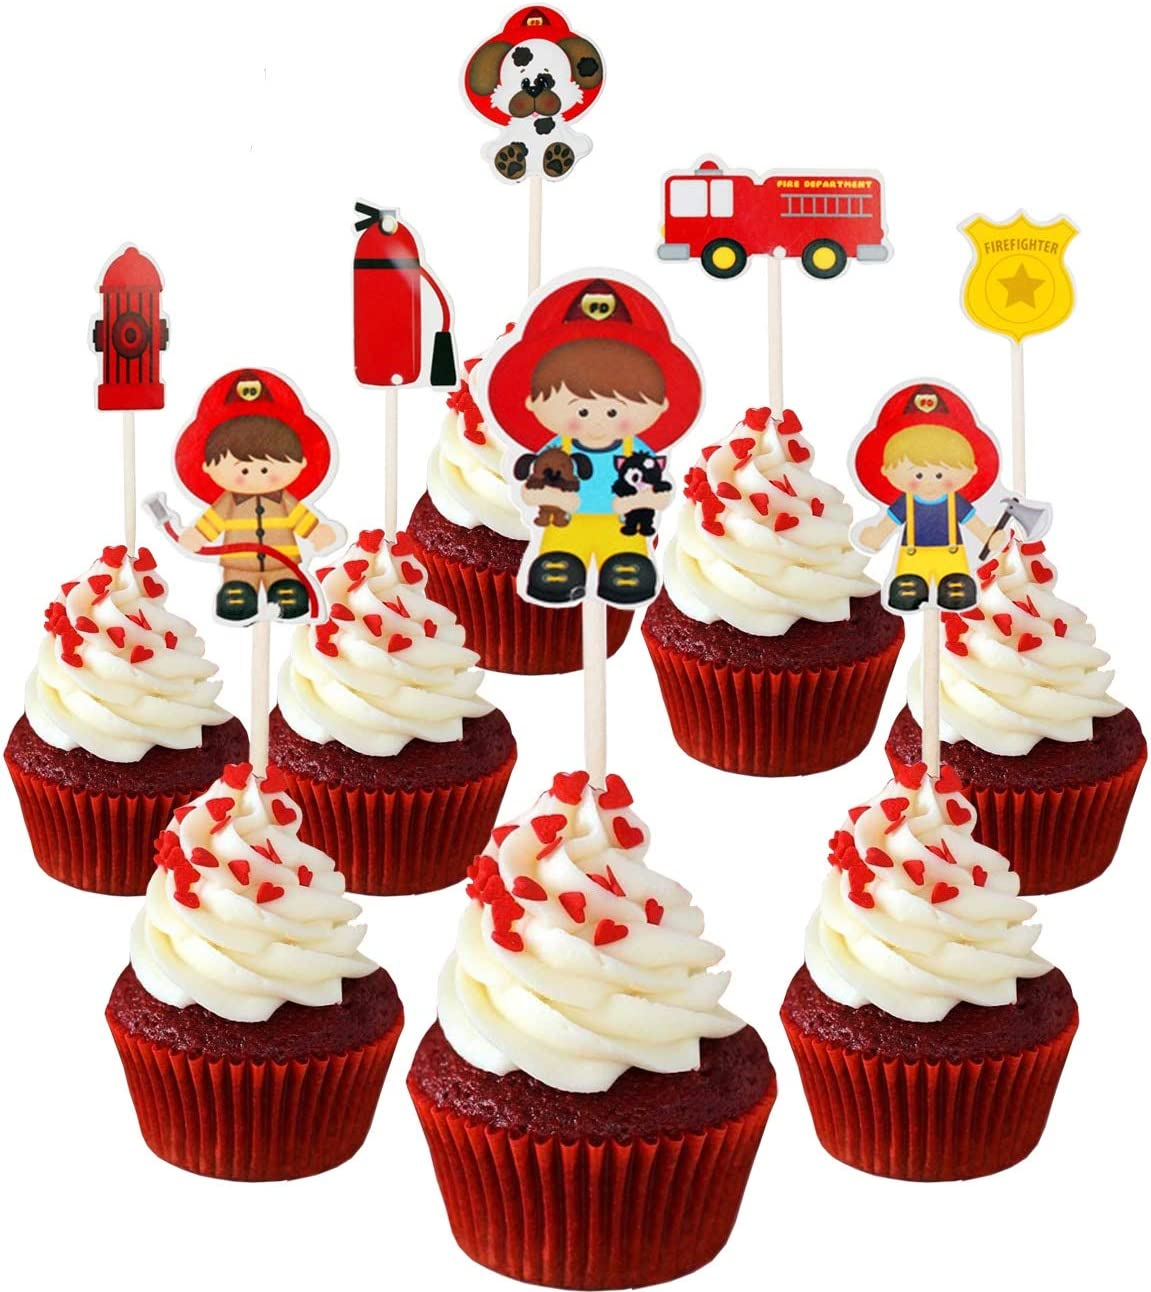 24pc Firefighter Fireman Fire Truck Fire extinguisher Cupcake Toppers for Birthday Party Firefighter is a hero!